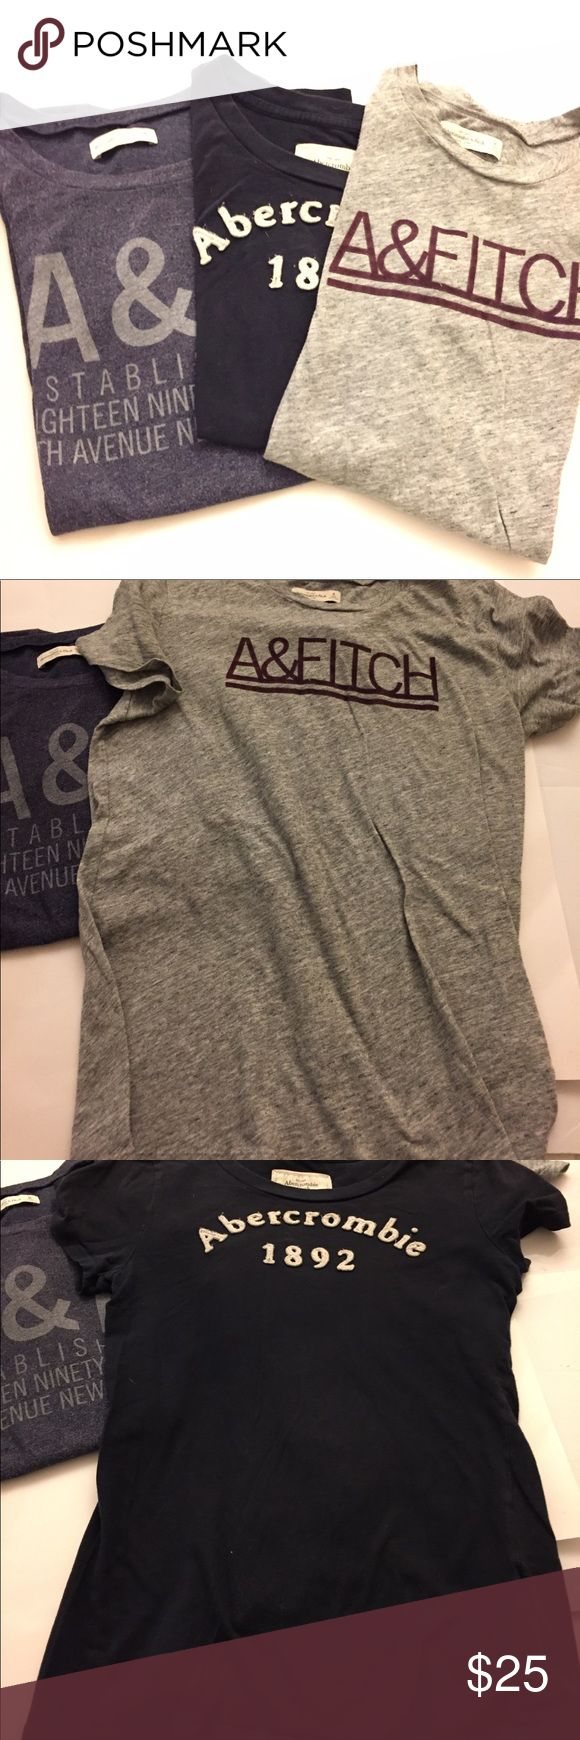 Abercrombie and Fitch TShirts Lot Lot of 3 Logo TShirts all size Medium. Condition of shirts are in used condition, the middle TShirt looks more like a small, the other two fit like a large. I am not the original owner, but I am a medium and it is my best guess in regards to the fit. Abercrombie & Fitch Tops Tees - Short Sleeve